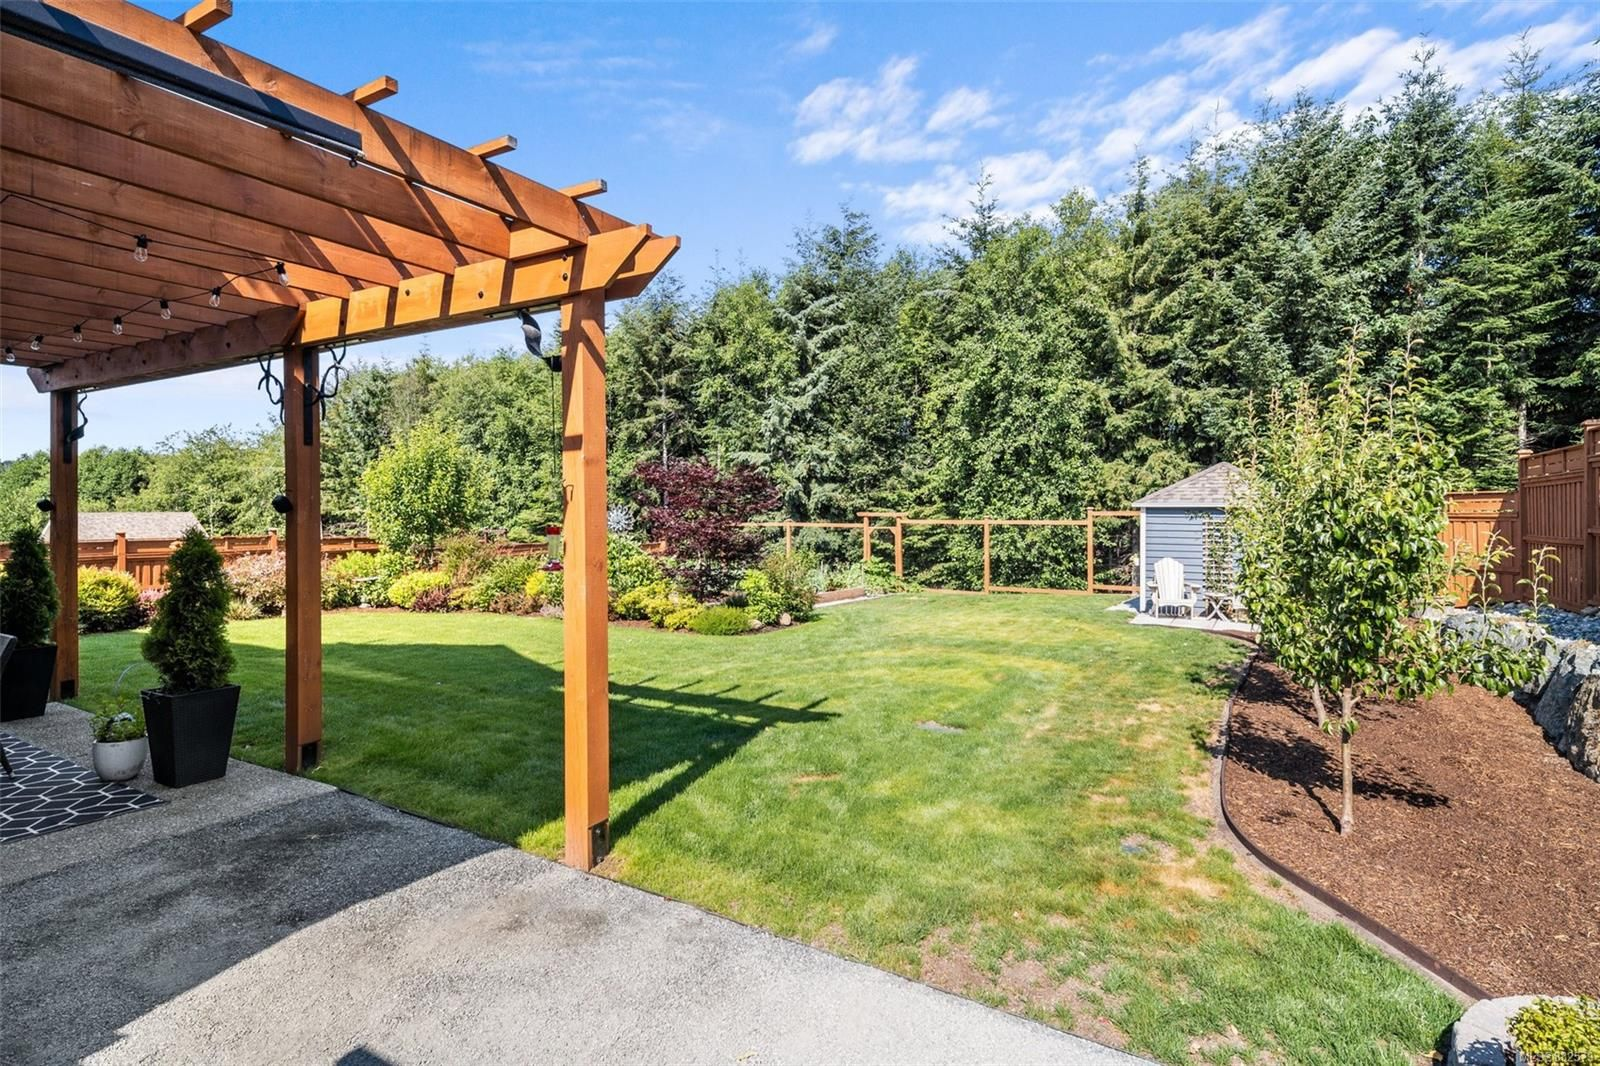 Photo 12: Photos: 2474 Anthony Pl in : Sk Sunriver House for sale (Sooke)  : MLS®# 882579